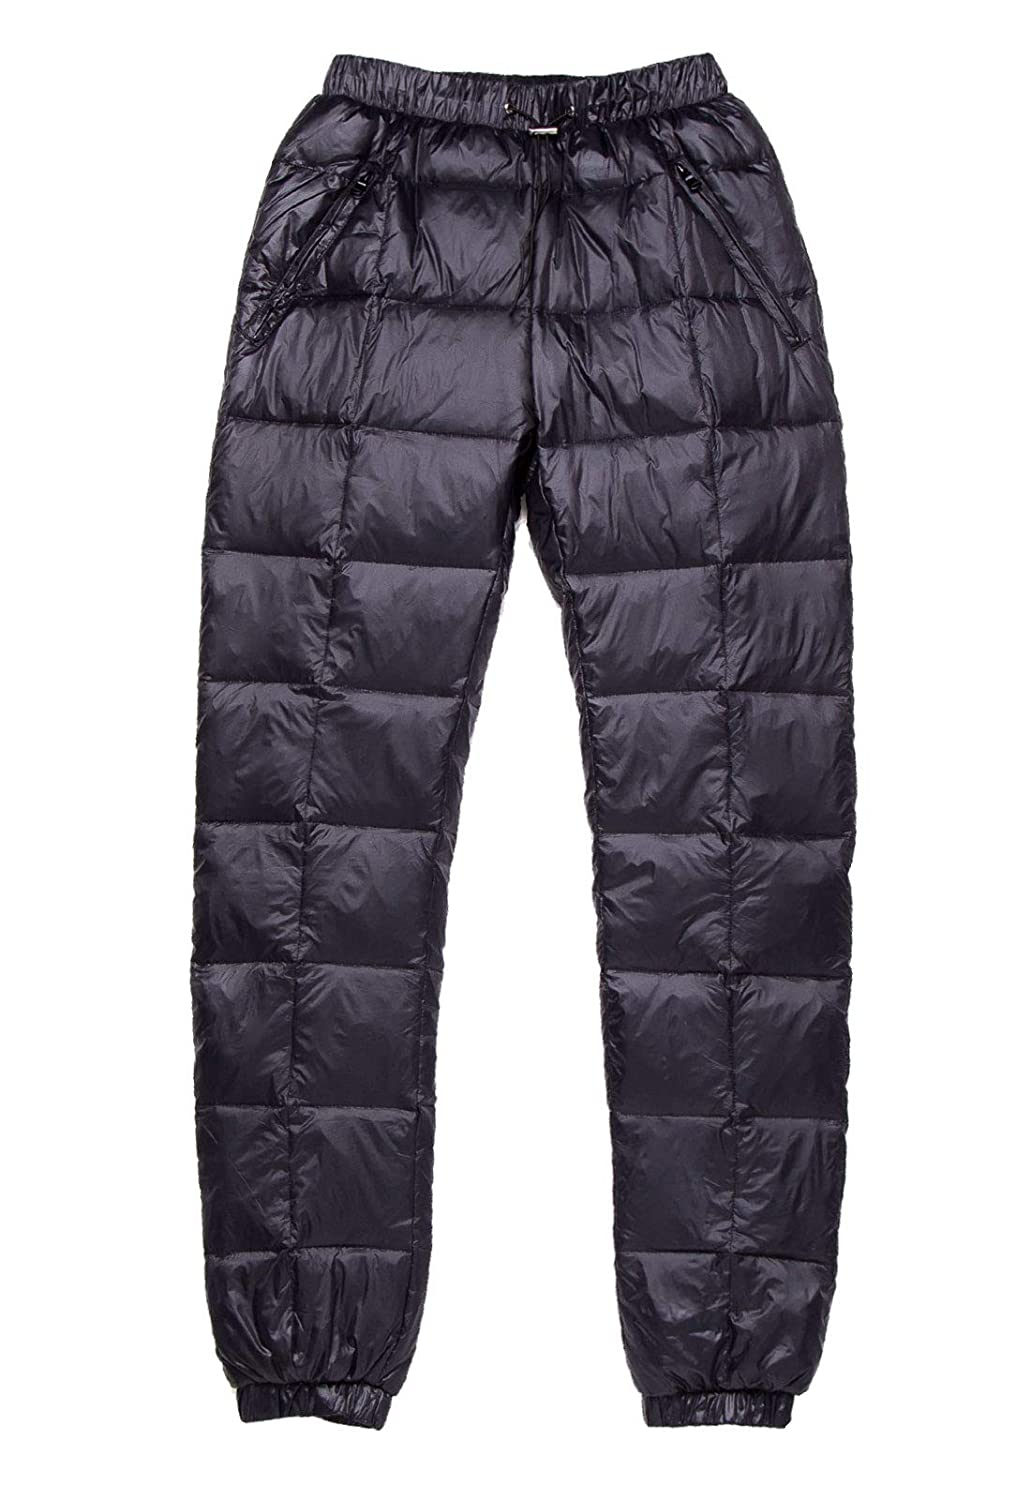 Flygo Womens Packable Winter Warm Snow Pants Utility Compression Down Pant Trousers